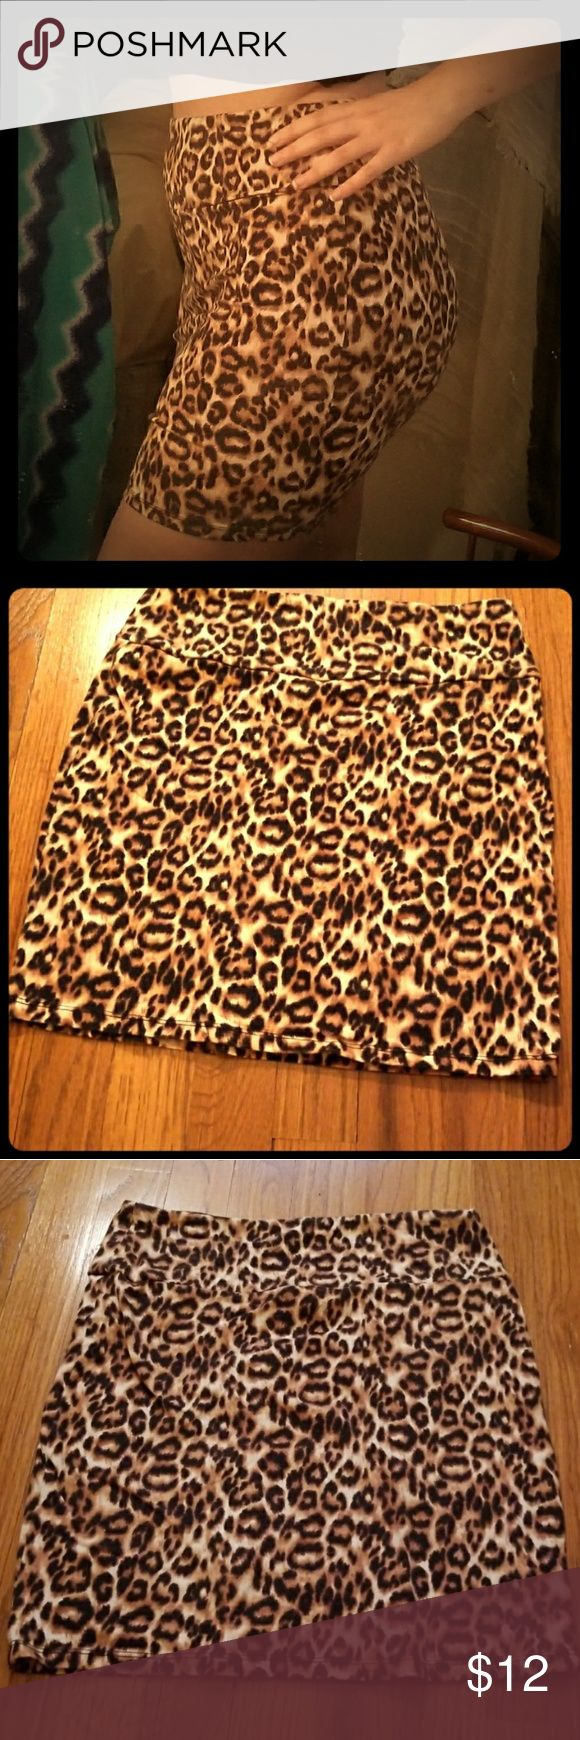 Cheetah Skirt Are you ready to pounce on that dance seen or strut into the big promotion with your cheetah skirt? This darling can get the Jaws dropping and bring up the confidence you already exude. Pair this with a red blazer and black pumps and get that cubicle popping! Or maybe with a leather jacket and a crop top, run those streets and flip that hair! Never worn, no wear, damage, pilling, etc. Even if you got the booty or not, this skirt helps slim the tummy and pop that booty ! Forever…